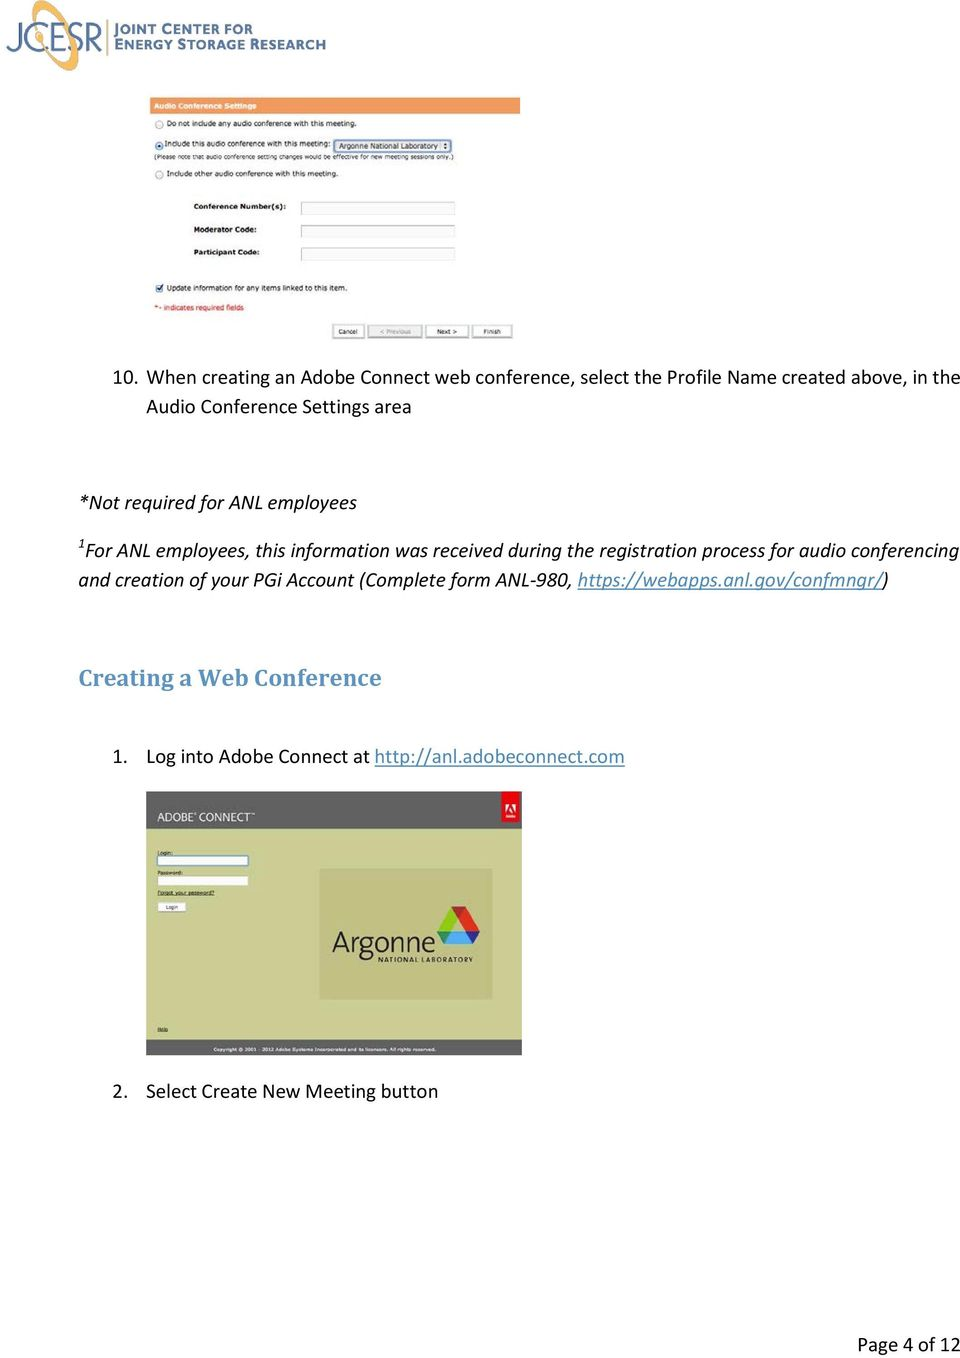 for audio conferencing and creation of your PGi Account (Complete form ANL-980, https://webapps.anl.